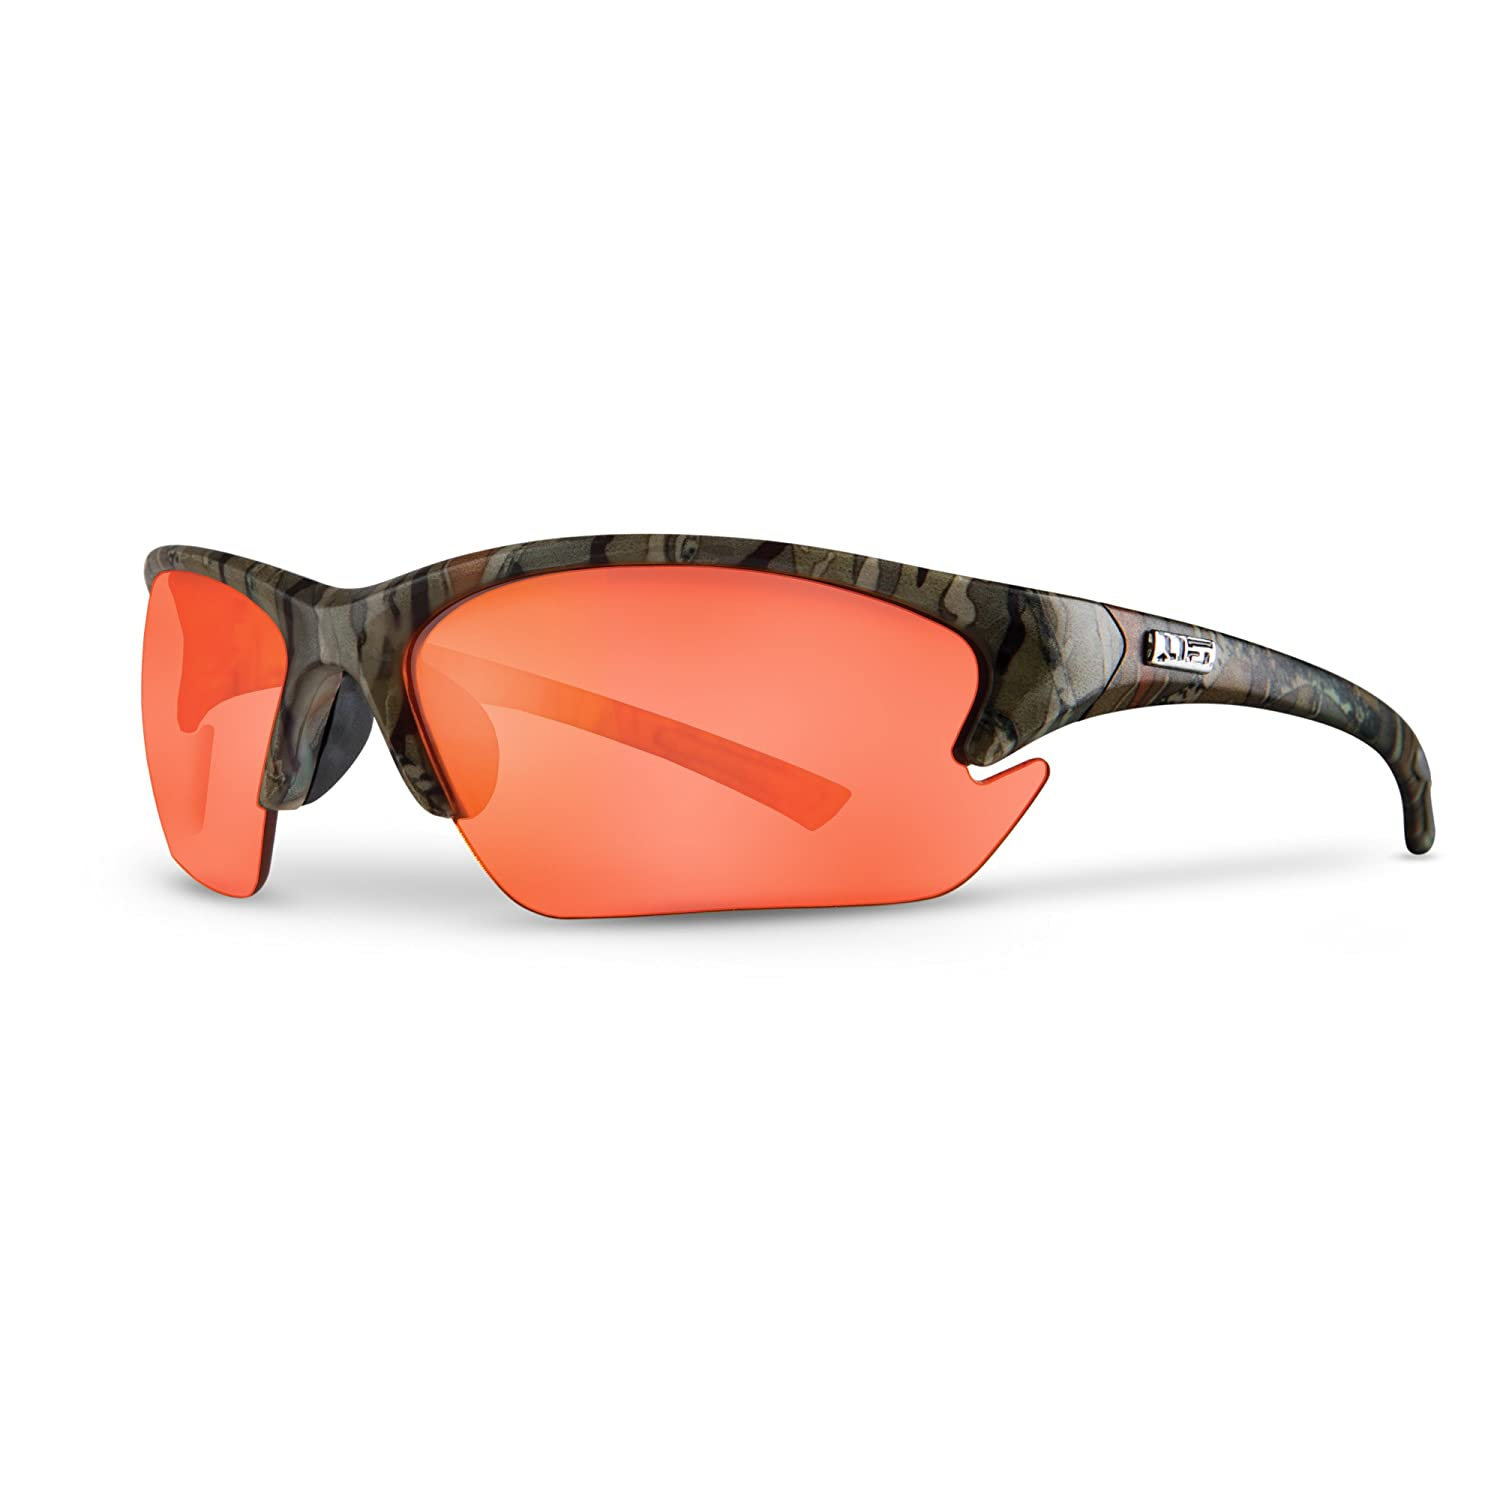 LIFT Safety Quest Safety Glasses (Camo Frame/Amber Lens) EQT-12CFA